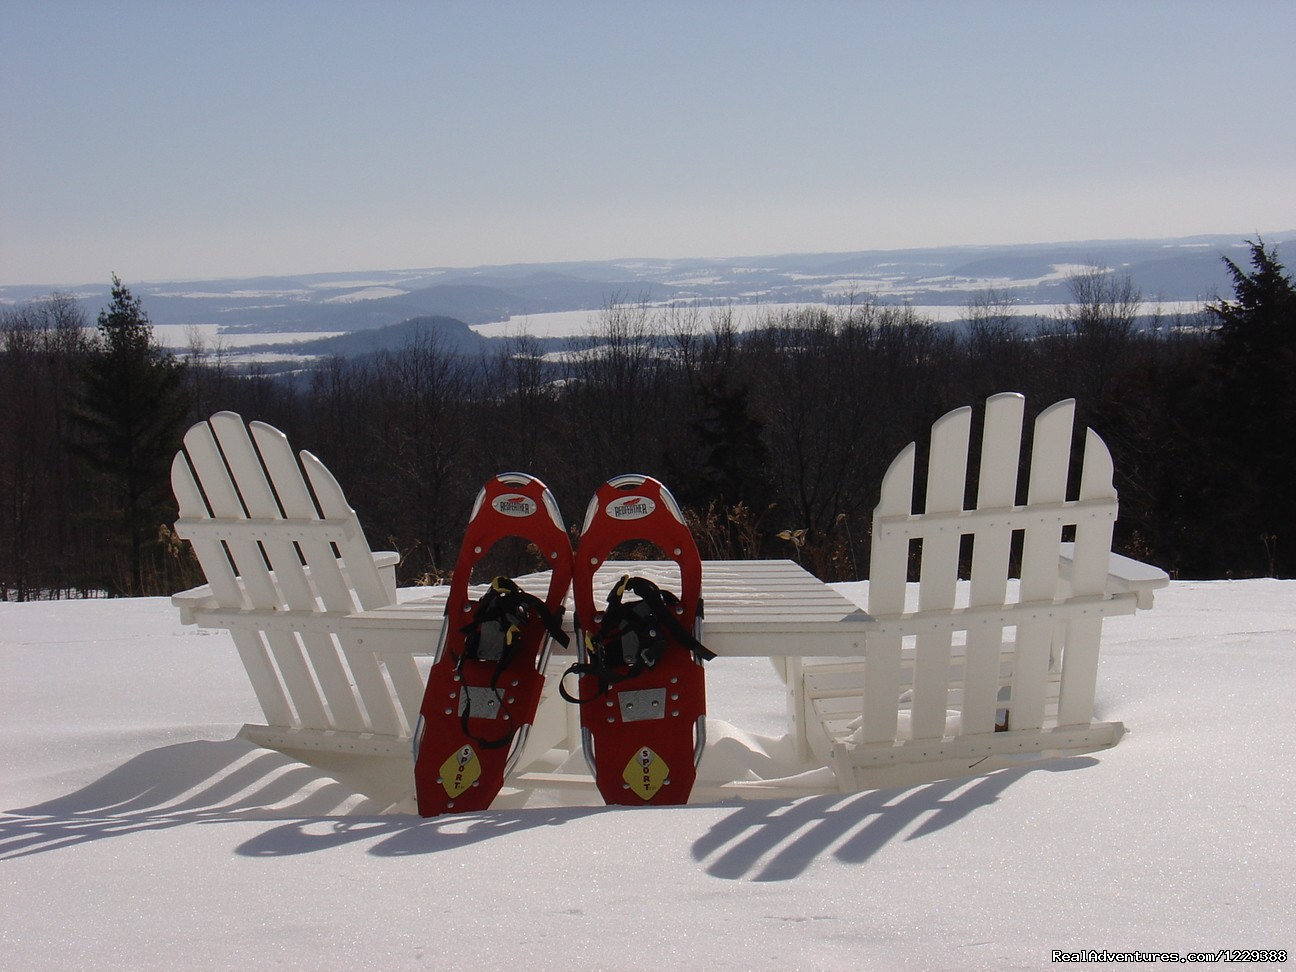 Snowshoeing in the Baraboo Bluffs